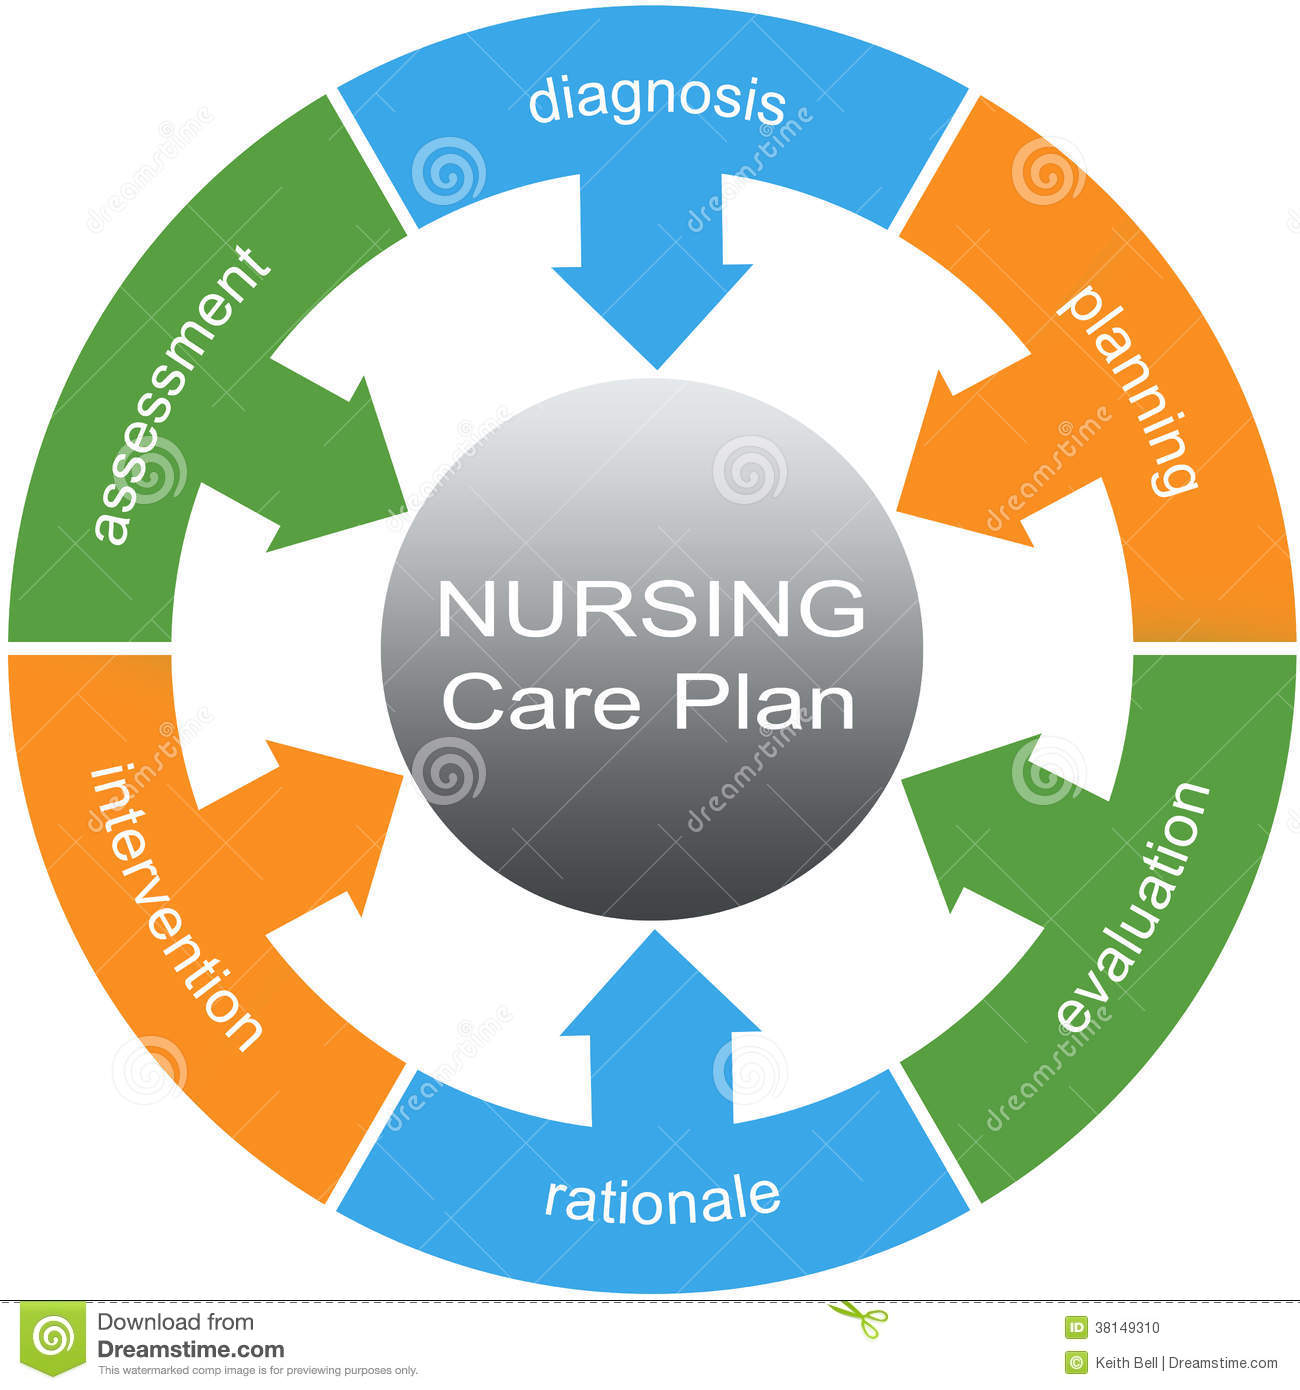 palliative care care plan template - nursing care plan word circle concept stock illustration